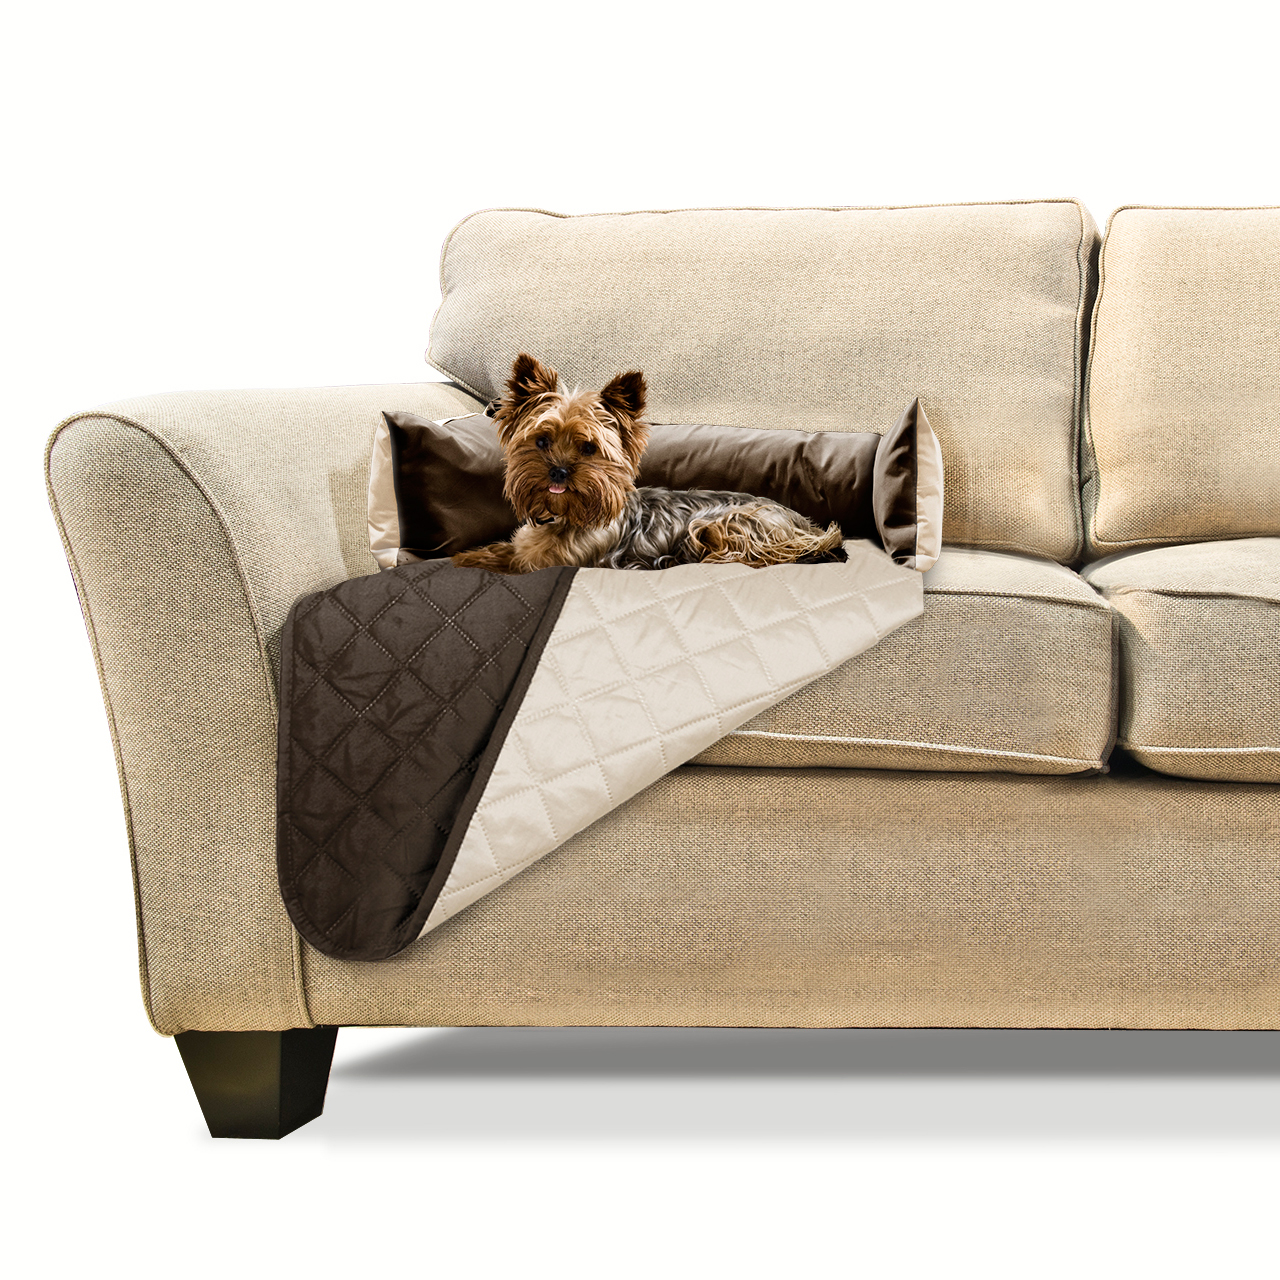 FurHaven Sofa Buddy Pet Bed Furniture Cover Espresso/clay